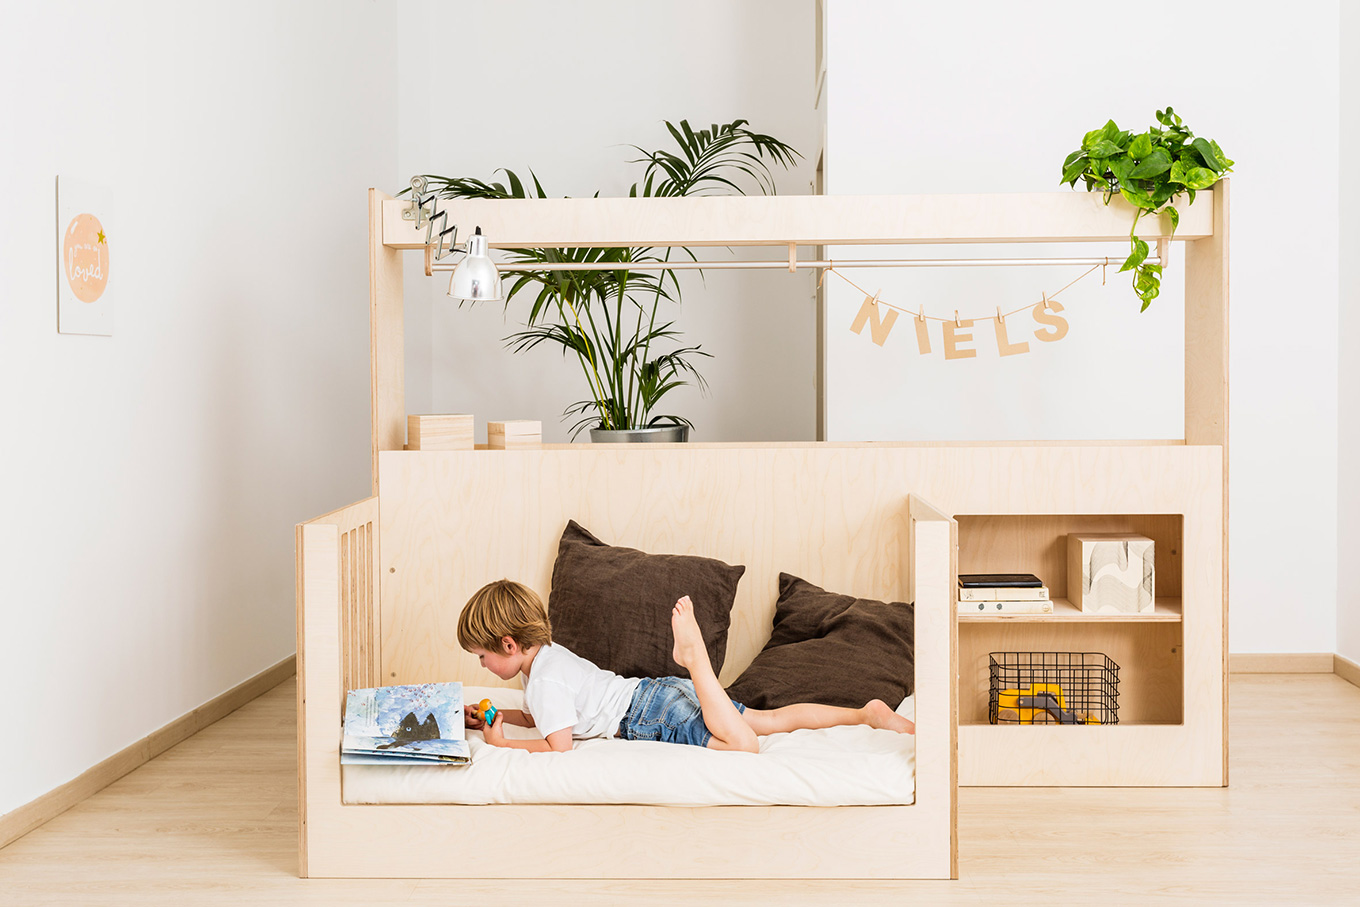 Transformable Kids Furniture Kid\u0027s furniture Wooden baby crib Toddler bed ... & Transformable Children\u0027s Furniture of Today \u2013 Adorable Home